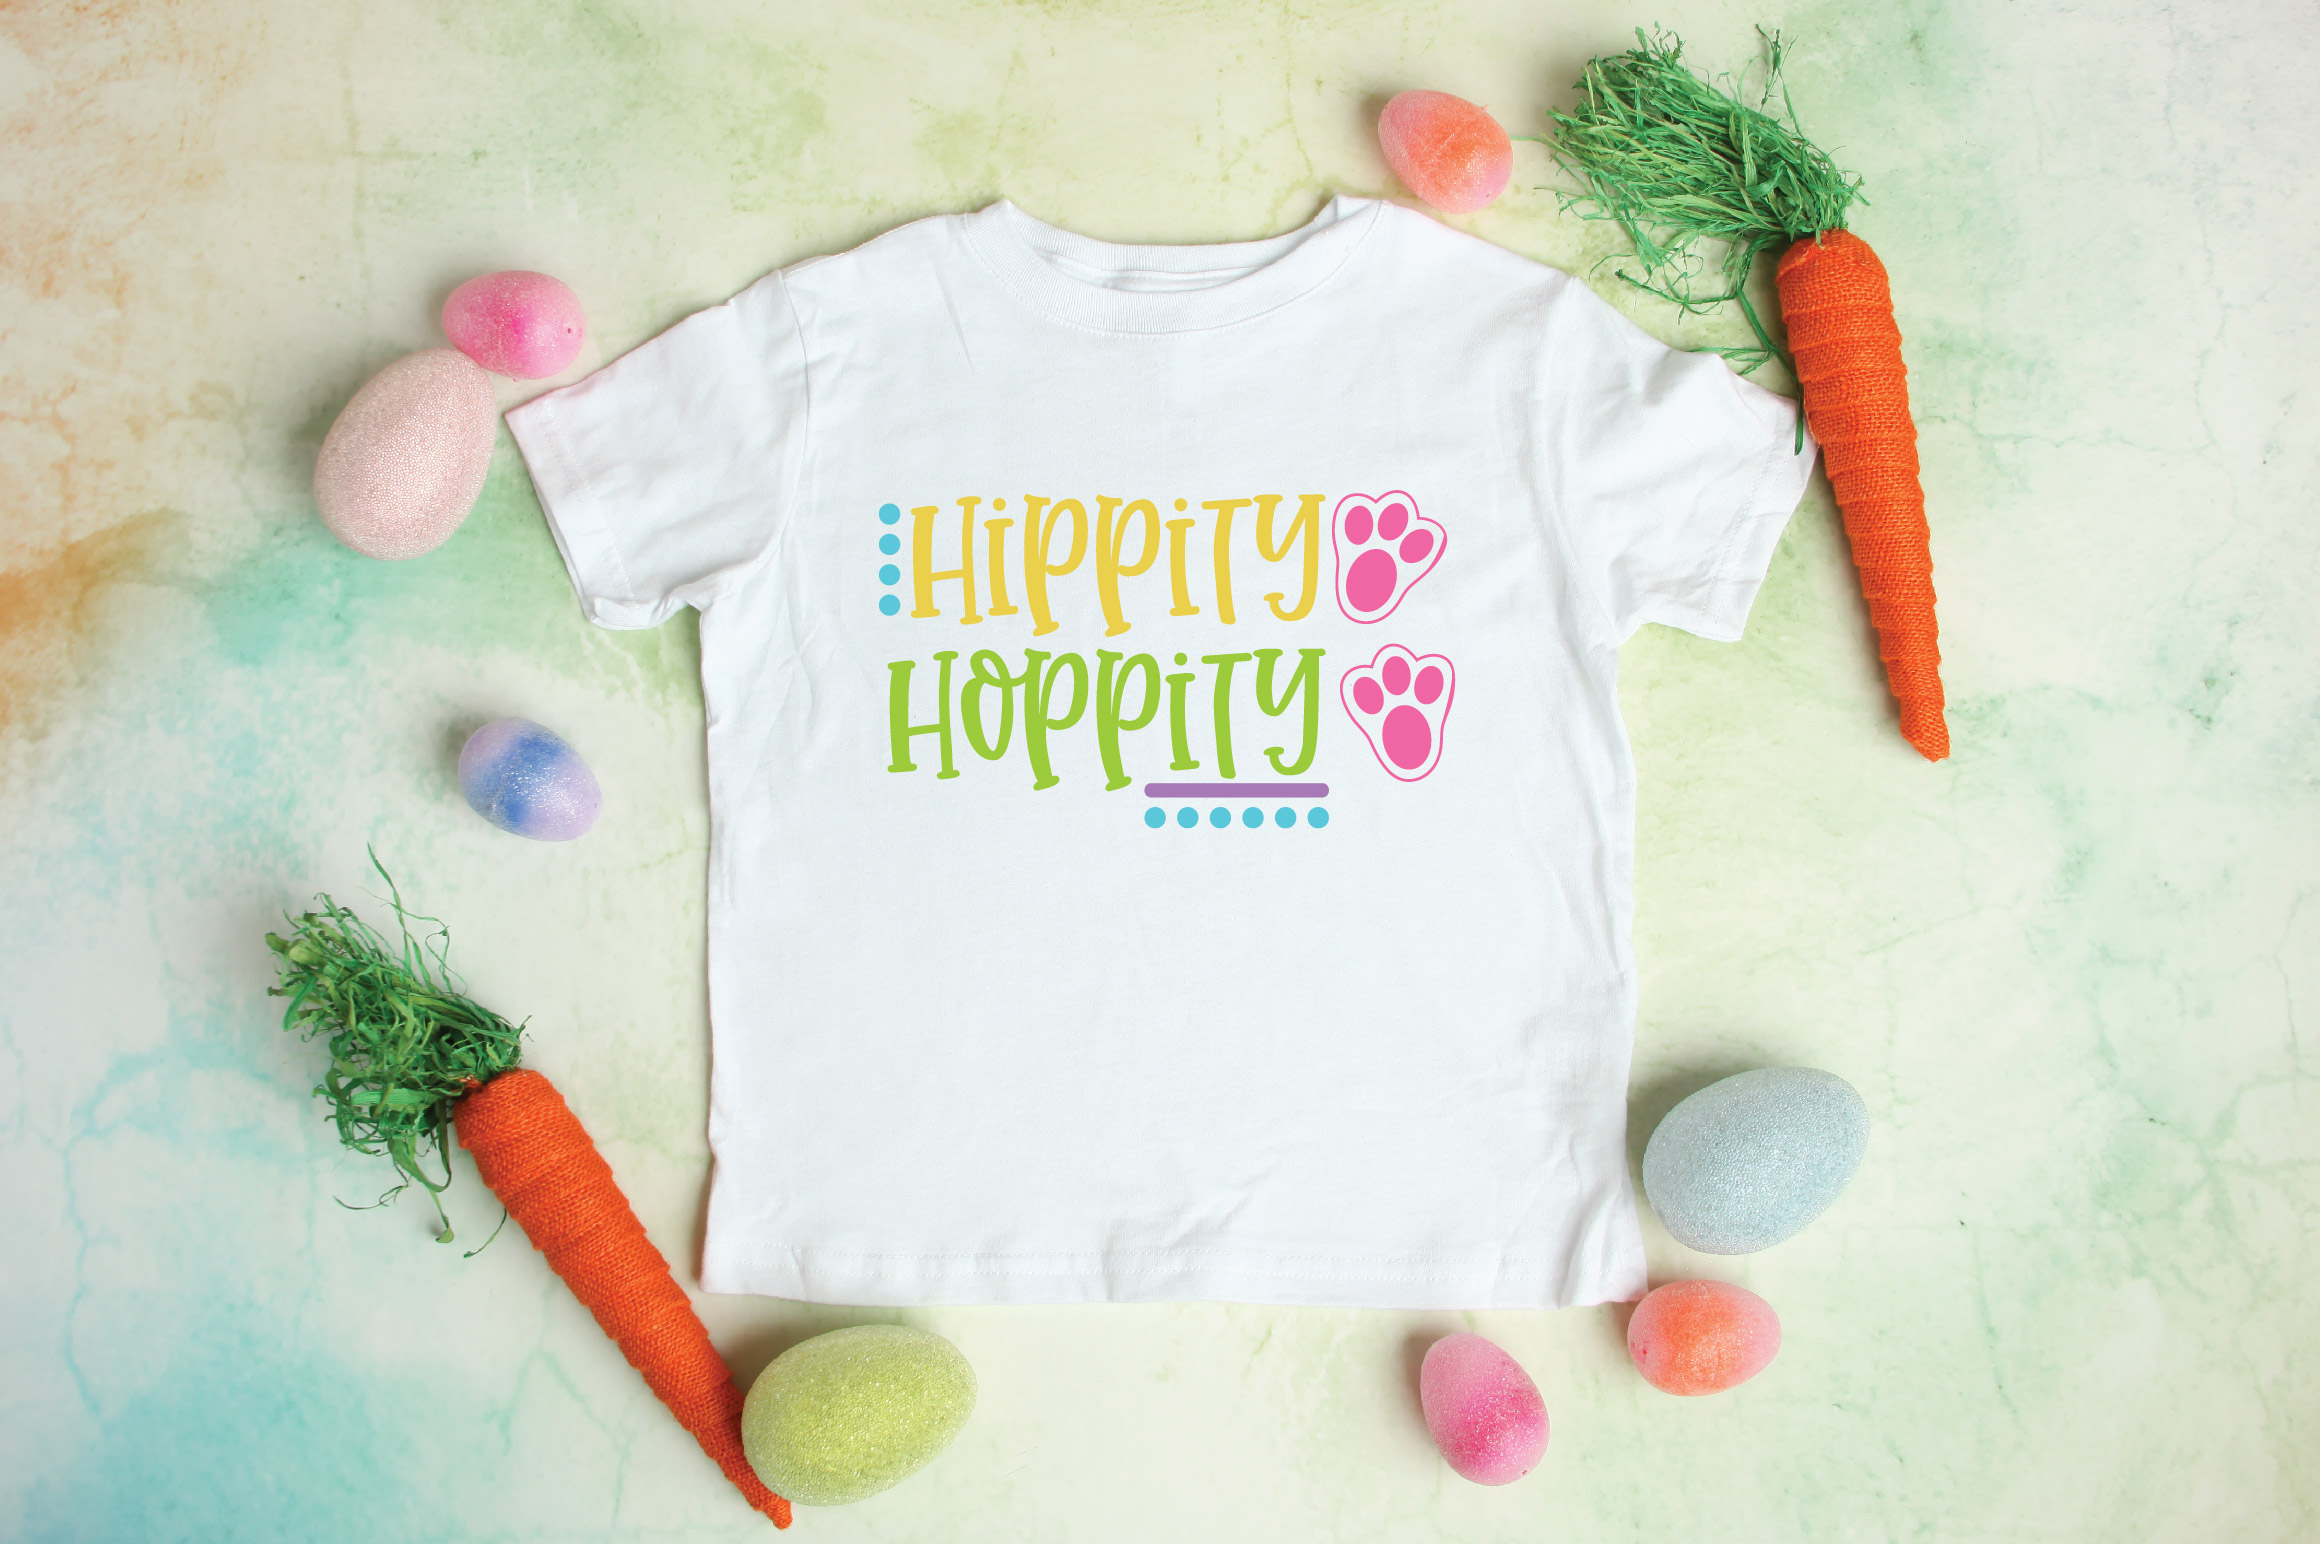 Easter SVG Cut File - Hippity Hoppity SVG DXF EPS PNG JPG AI example image 3